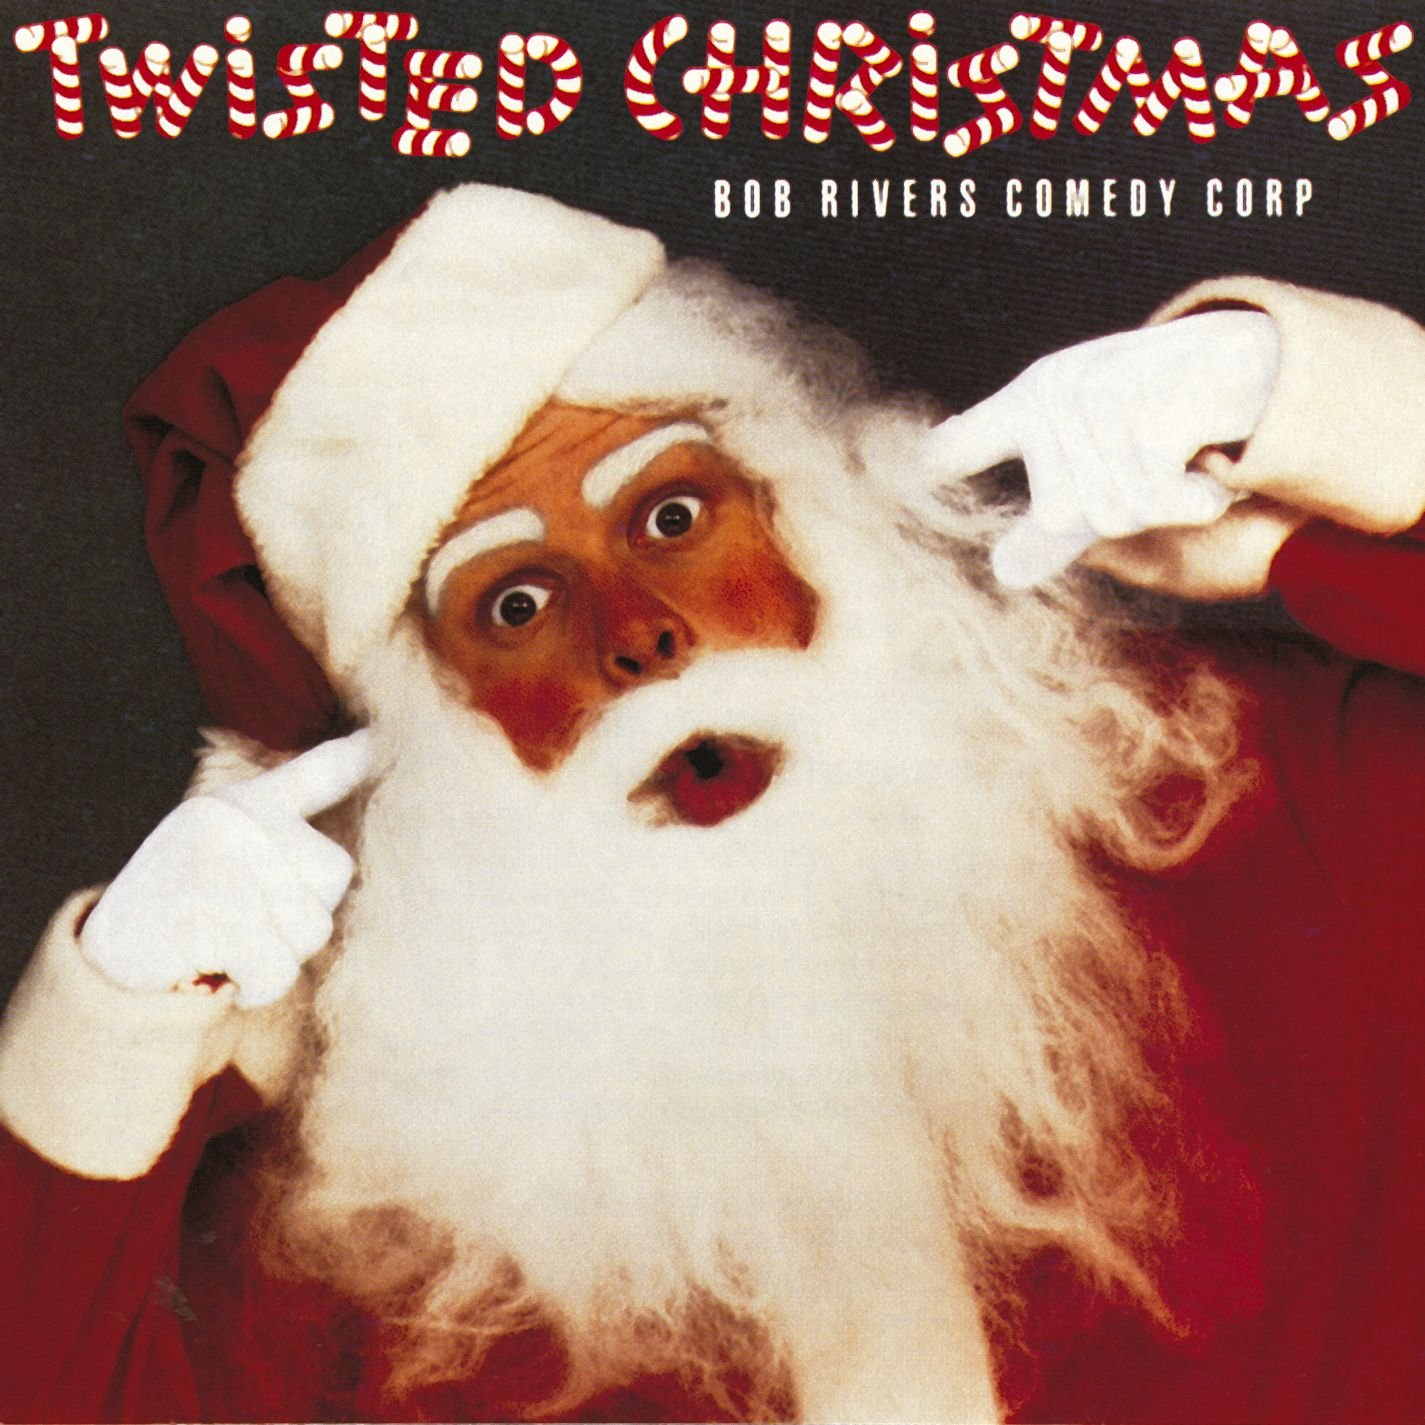 Bob Rivers Comedy Corp - Twisted Christmas - Amazon.com Music